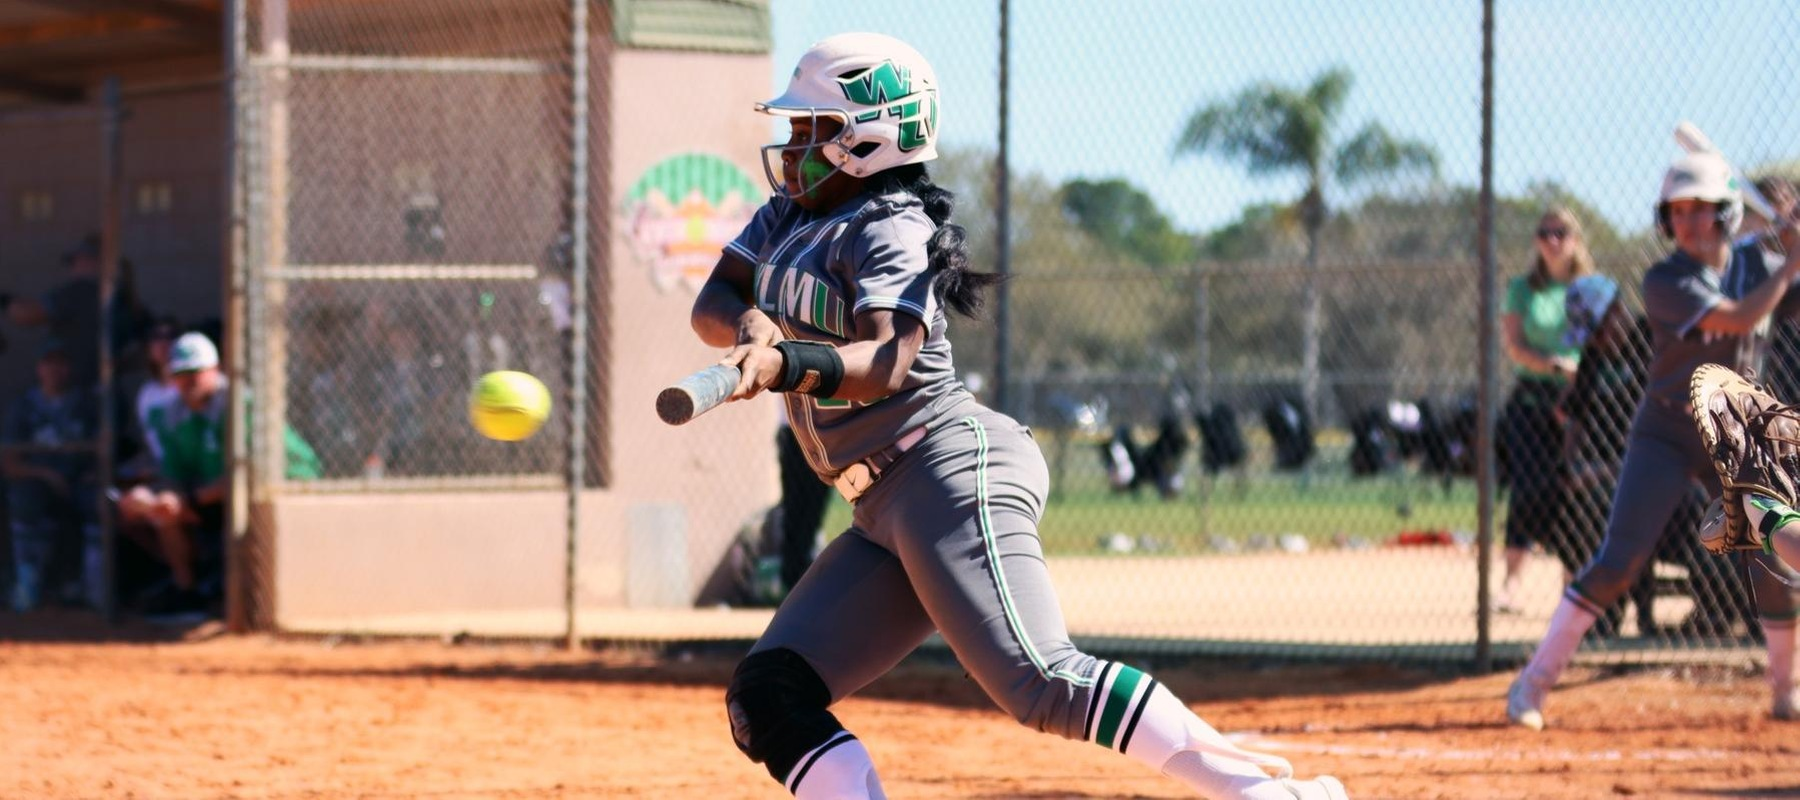 Copyright 2020. Wilmington University. All rights reserved. Photo by Mary Kate Rumbaugh. March 1, 2020 vs. Grand Valley State at Winter Haven Diamond Plex in Winter Haven, Florida.